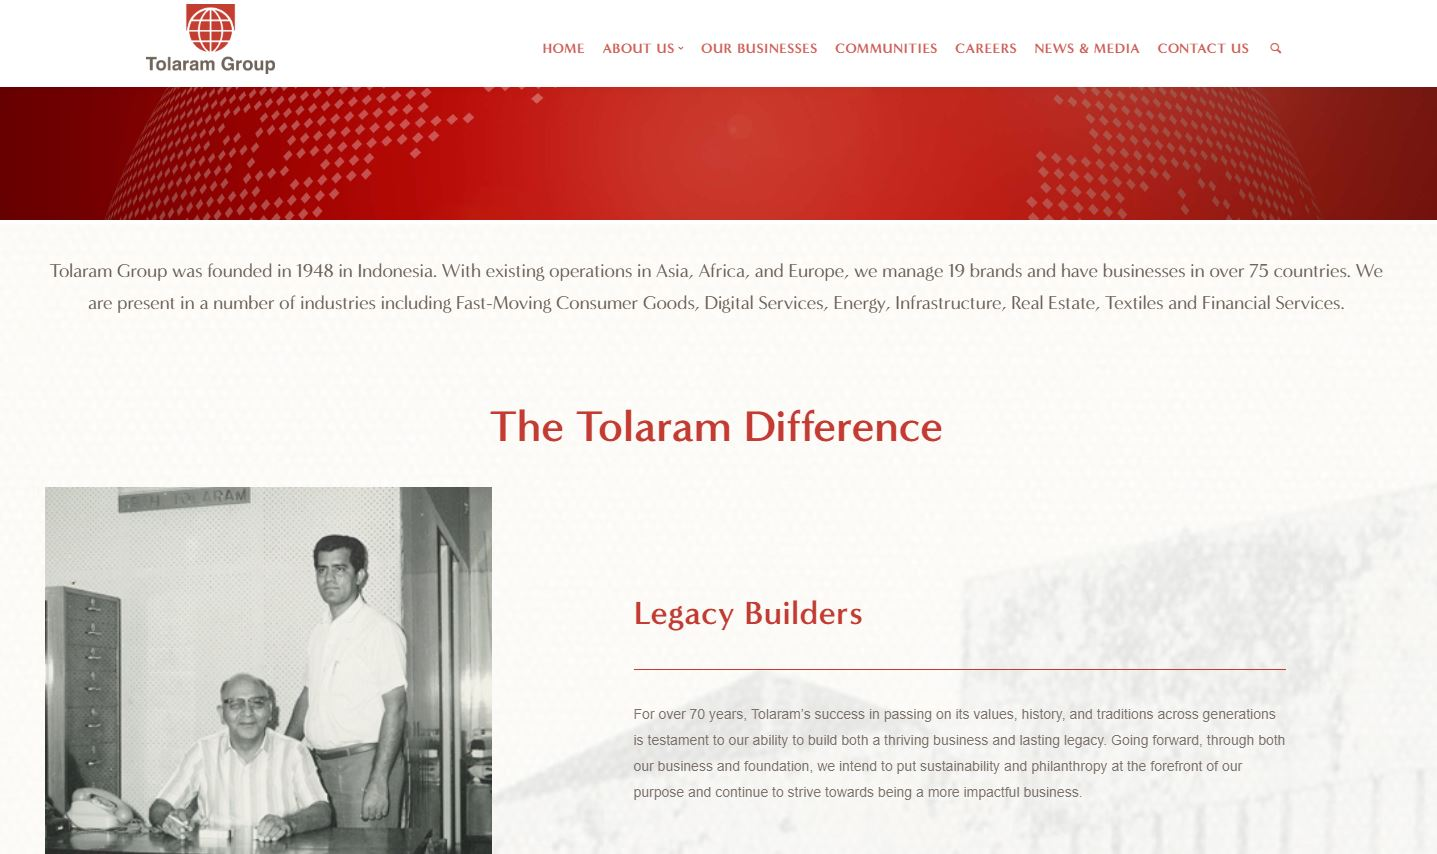 Tolaram Group website